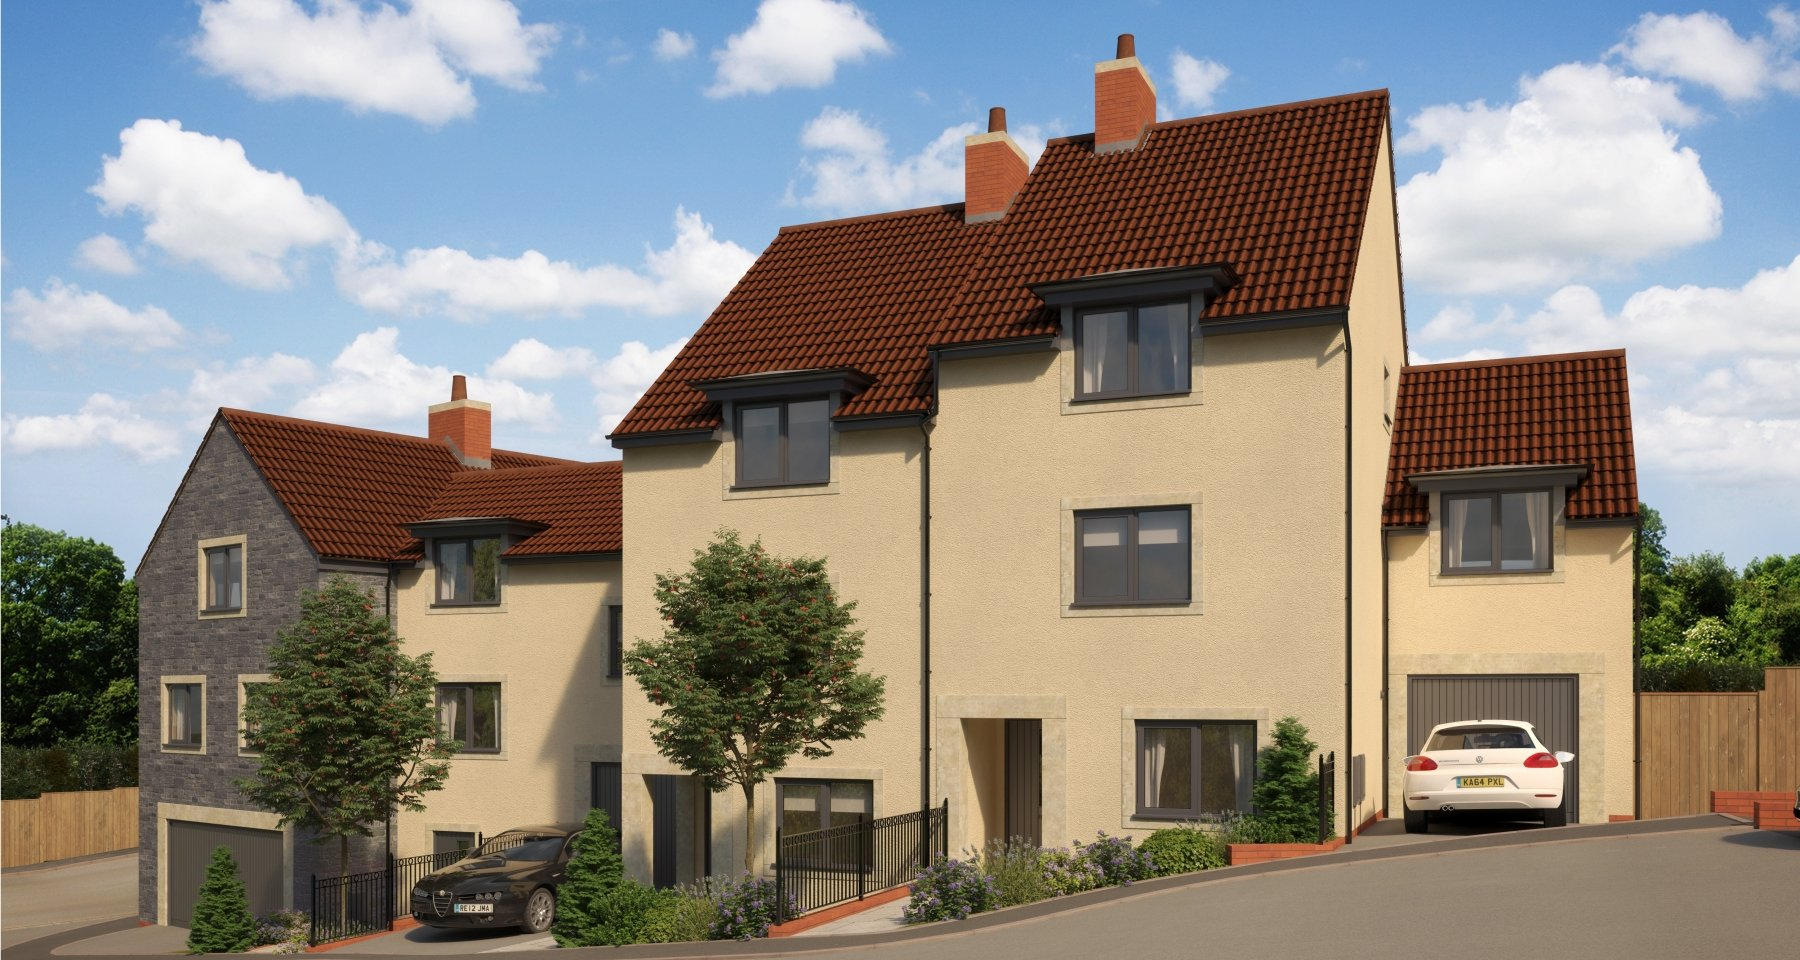 Pippard\'s Court | New Homes in Somerton, Somerset | Elan Homes